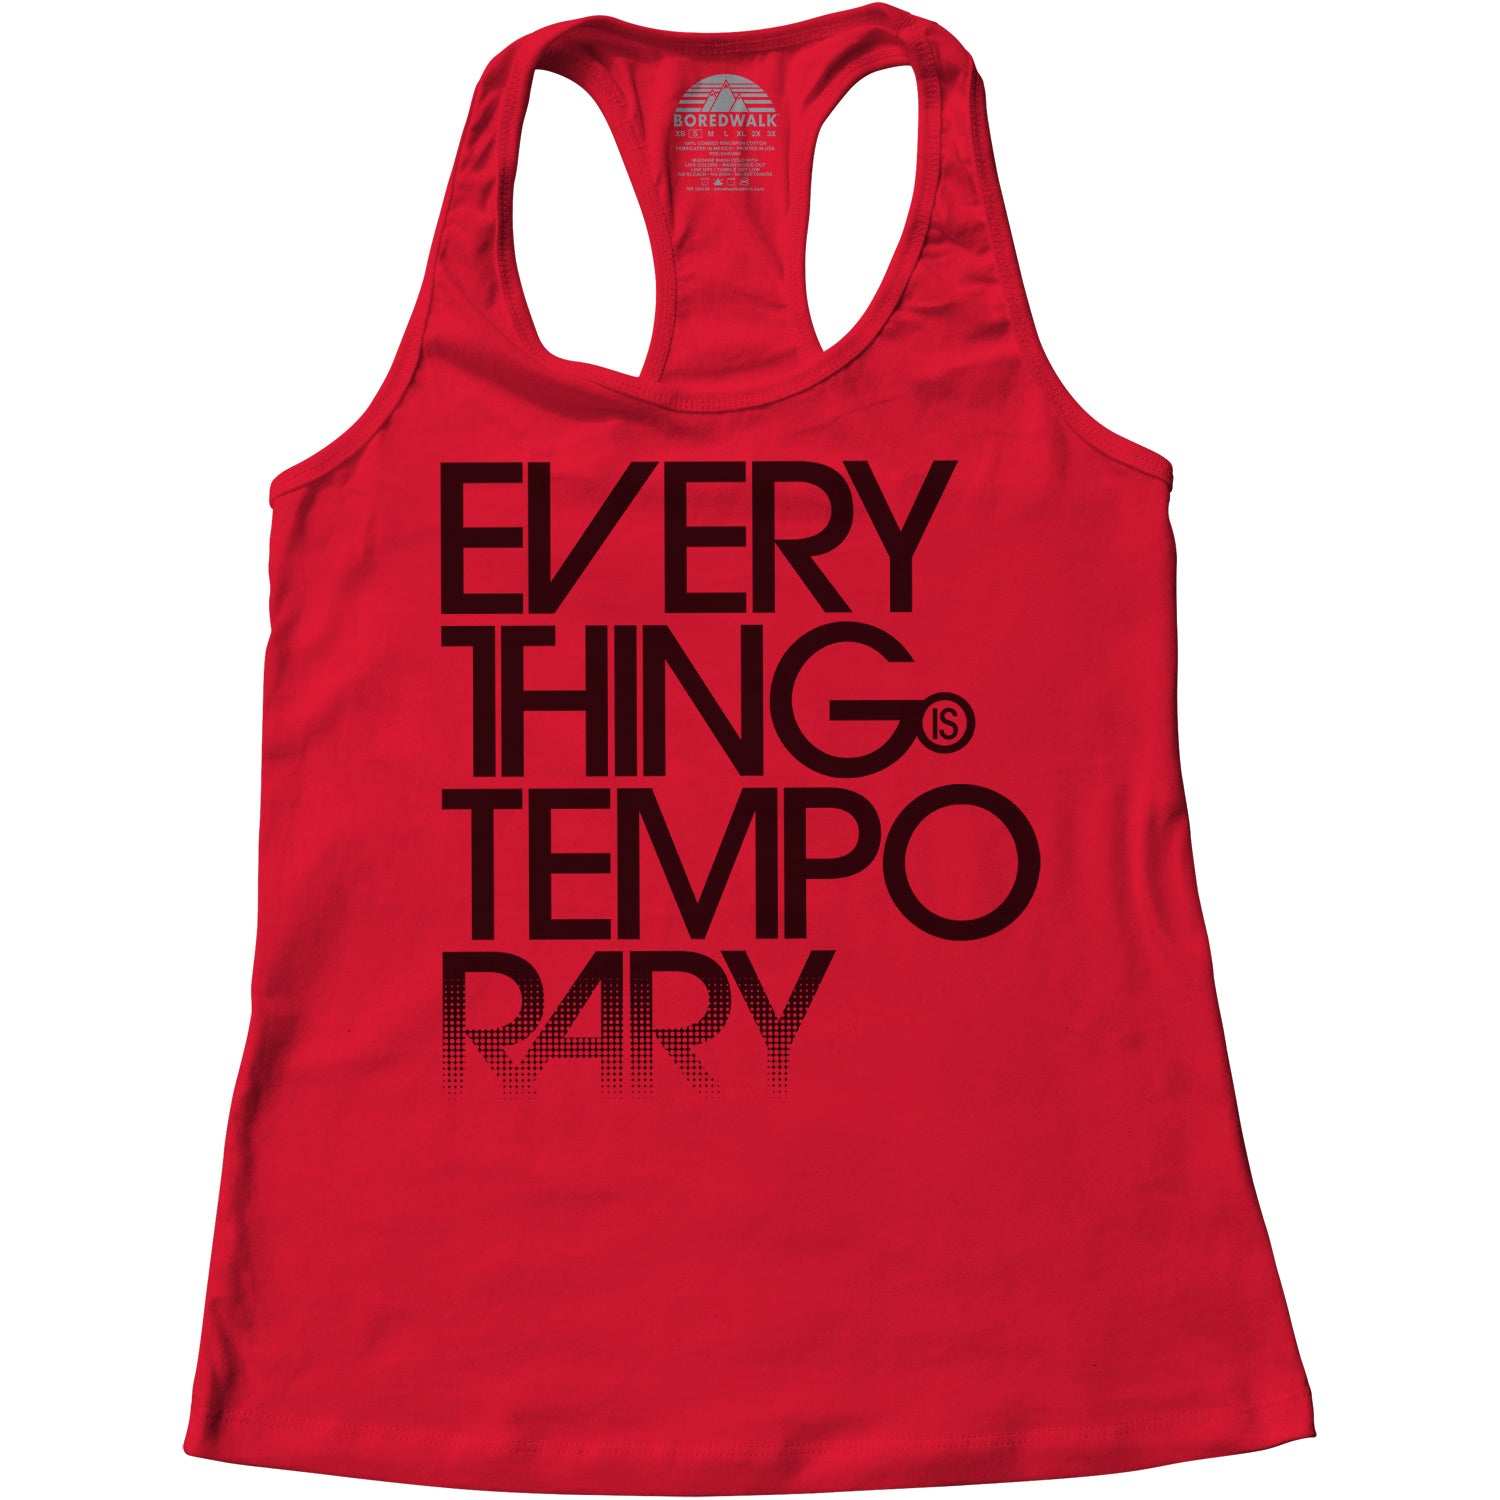 Women's Everything is Temporary Racerback Tank Top